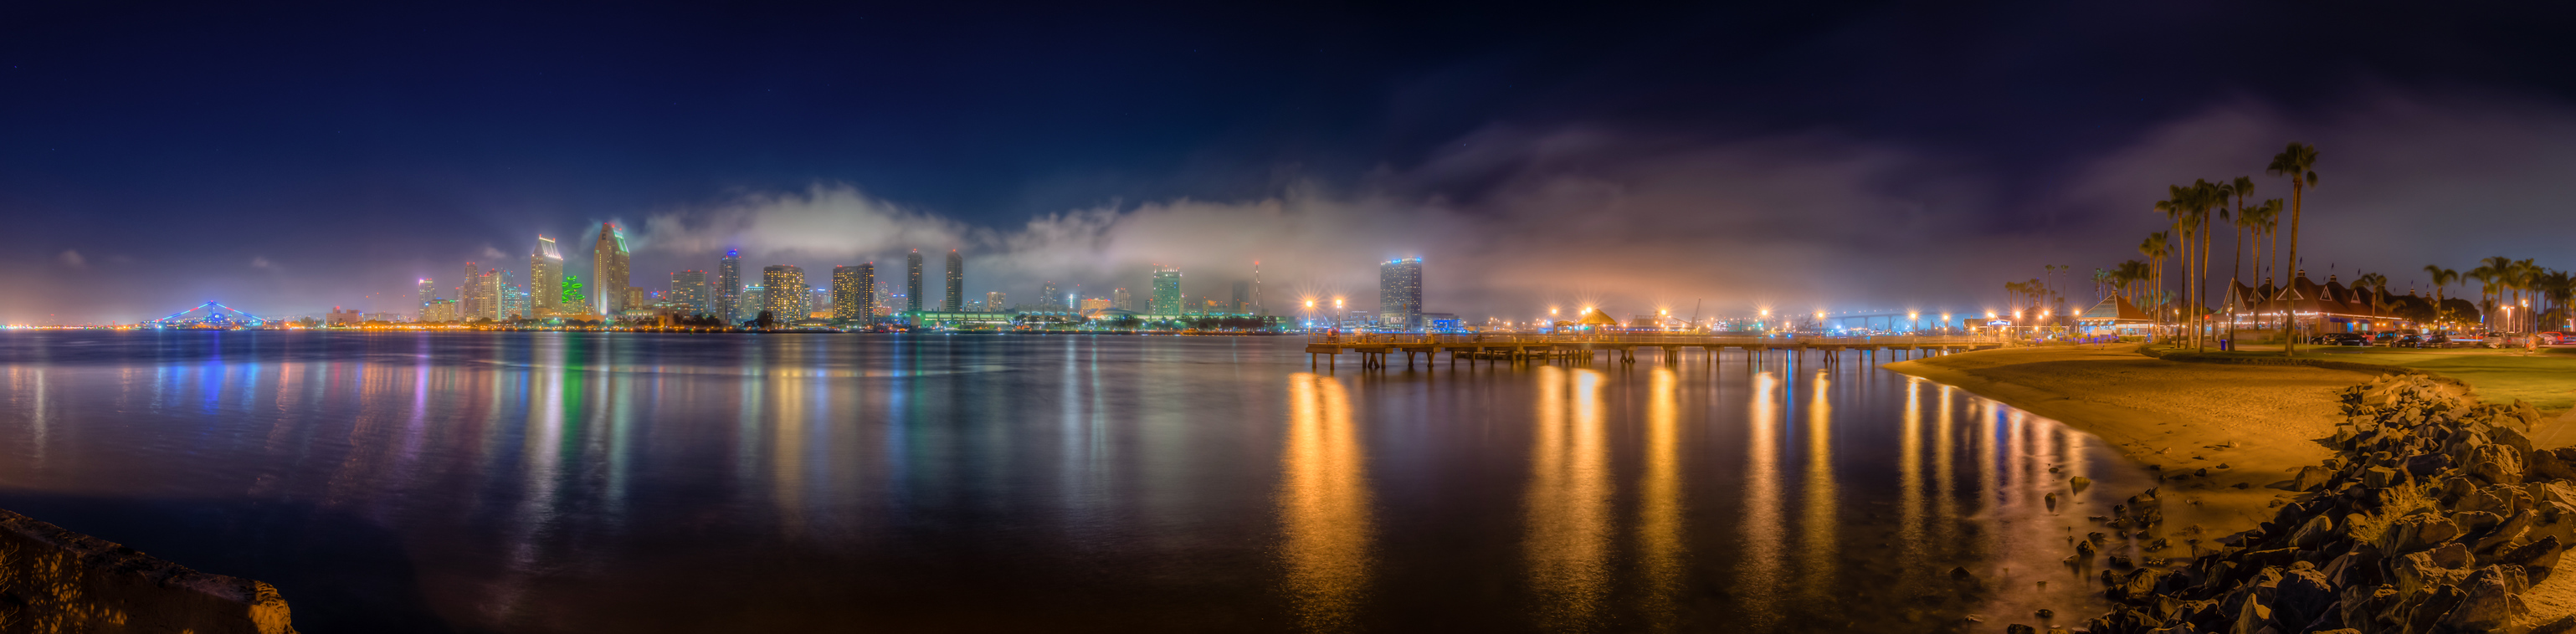 San Diego Night Skyline SM-1.jpg